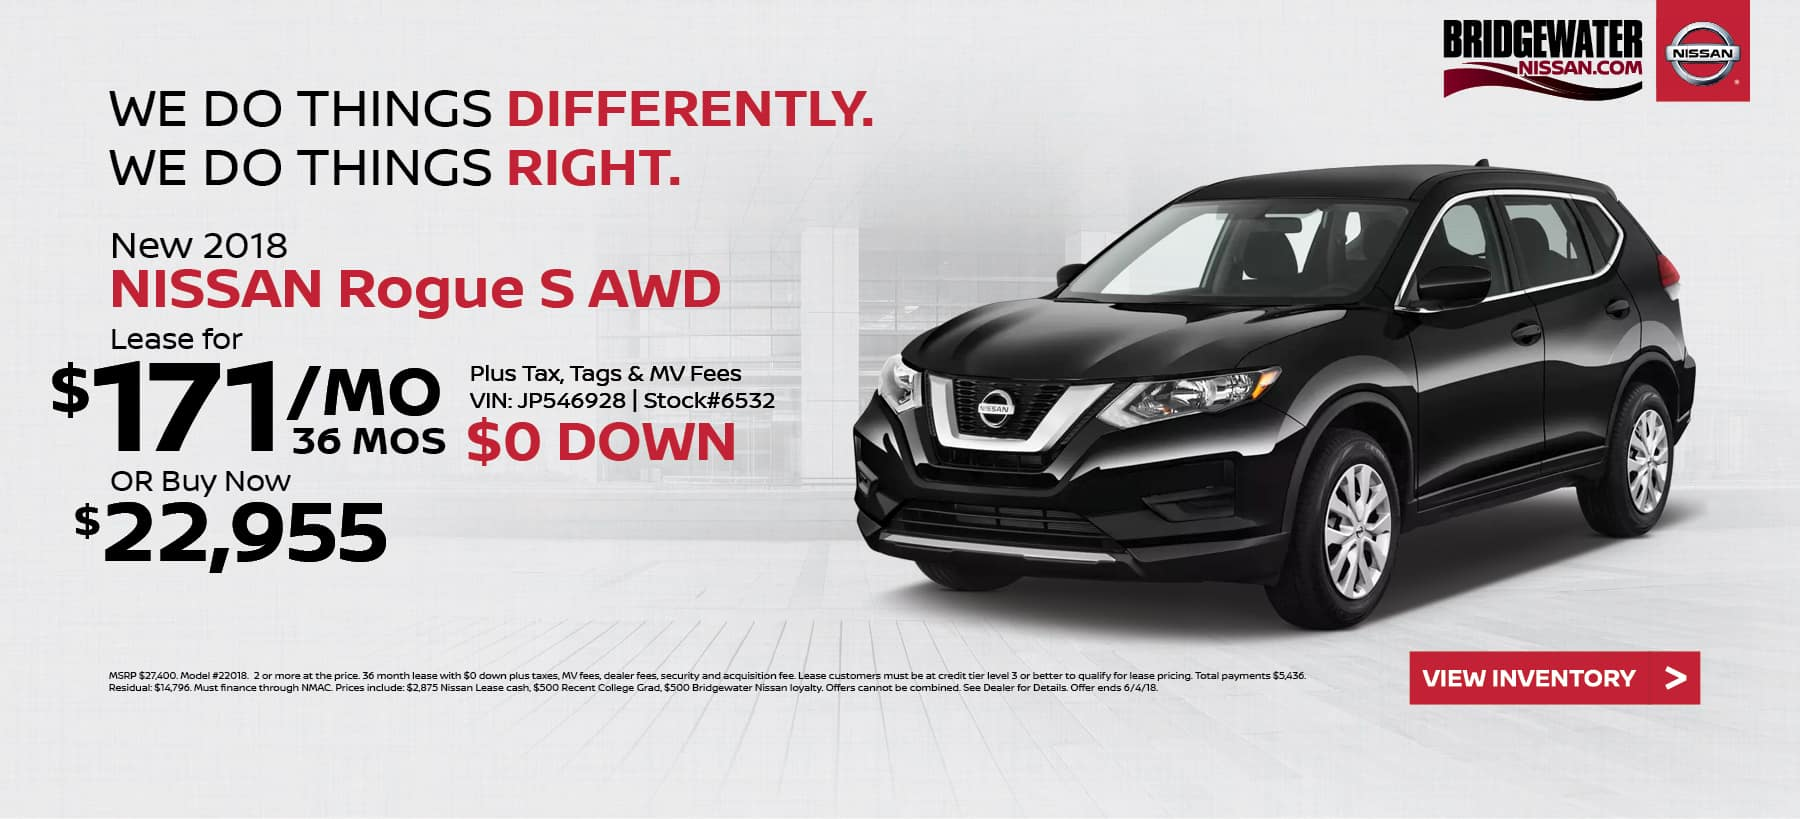 Bridgewater Nissan | Nissan Dealer in Bridgewater, NJ